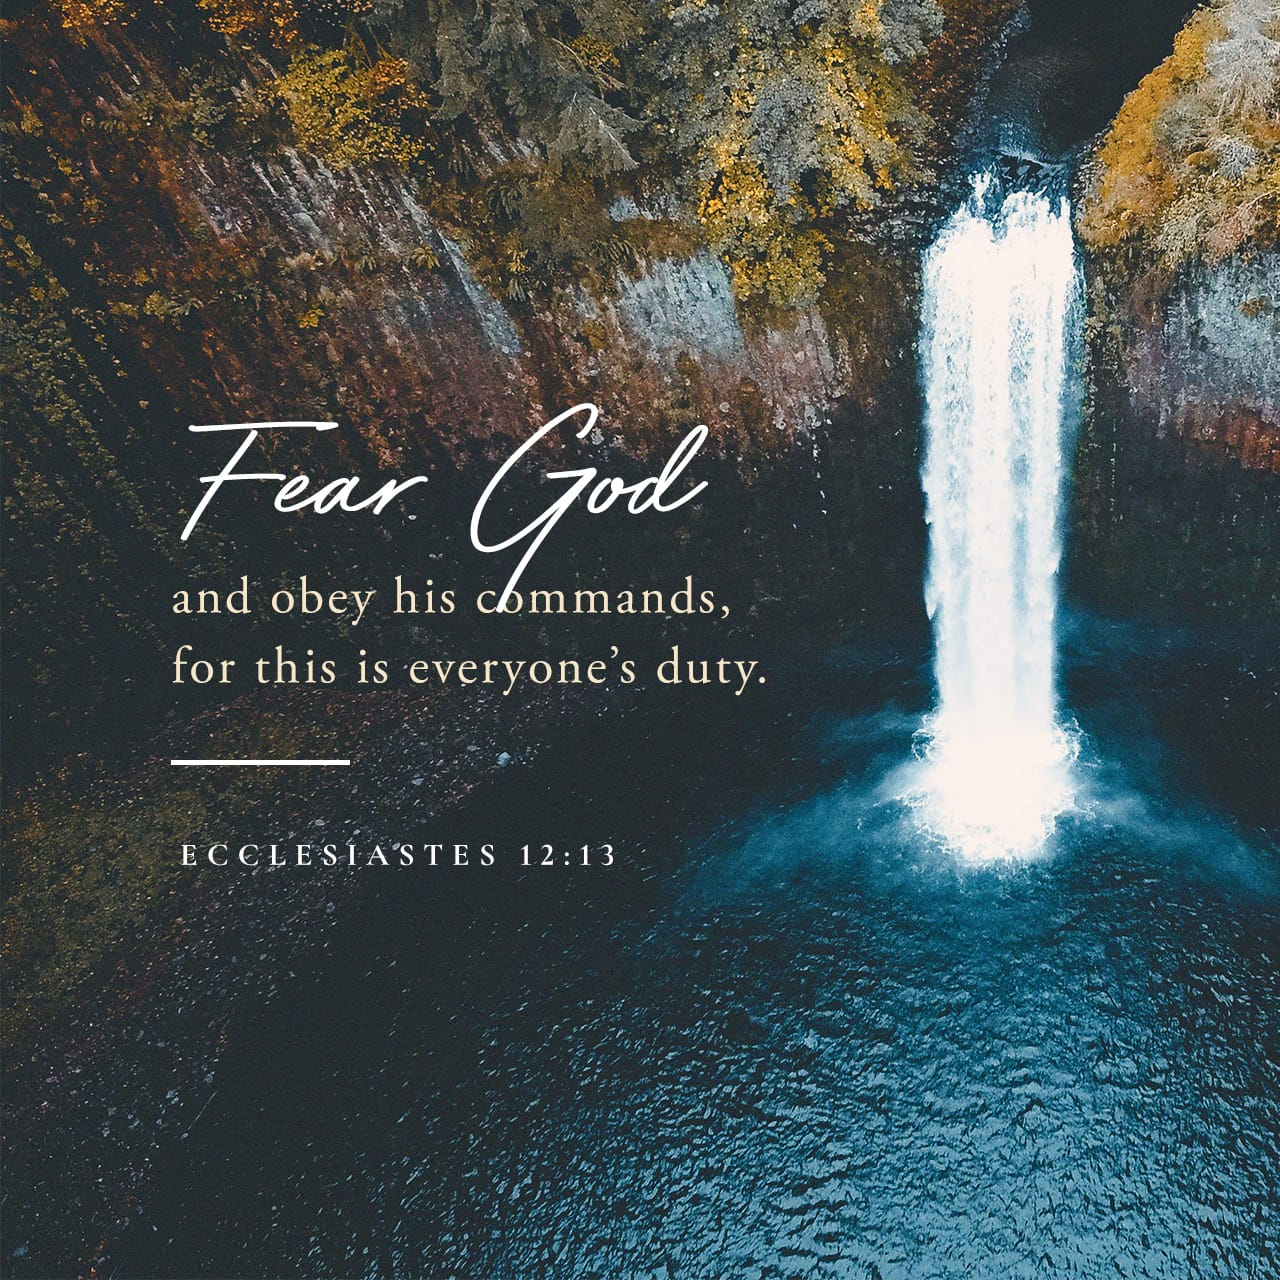 Ecclesiastes 12:13 Let us hear the conclusion of the whole matter: Fear God, and keep his commandments: for this is the whole duty of man. | King James Version (KJV)